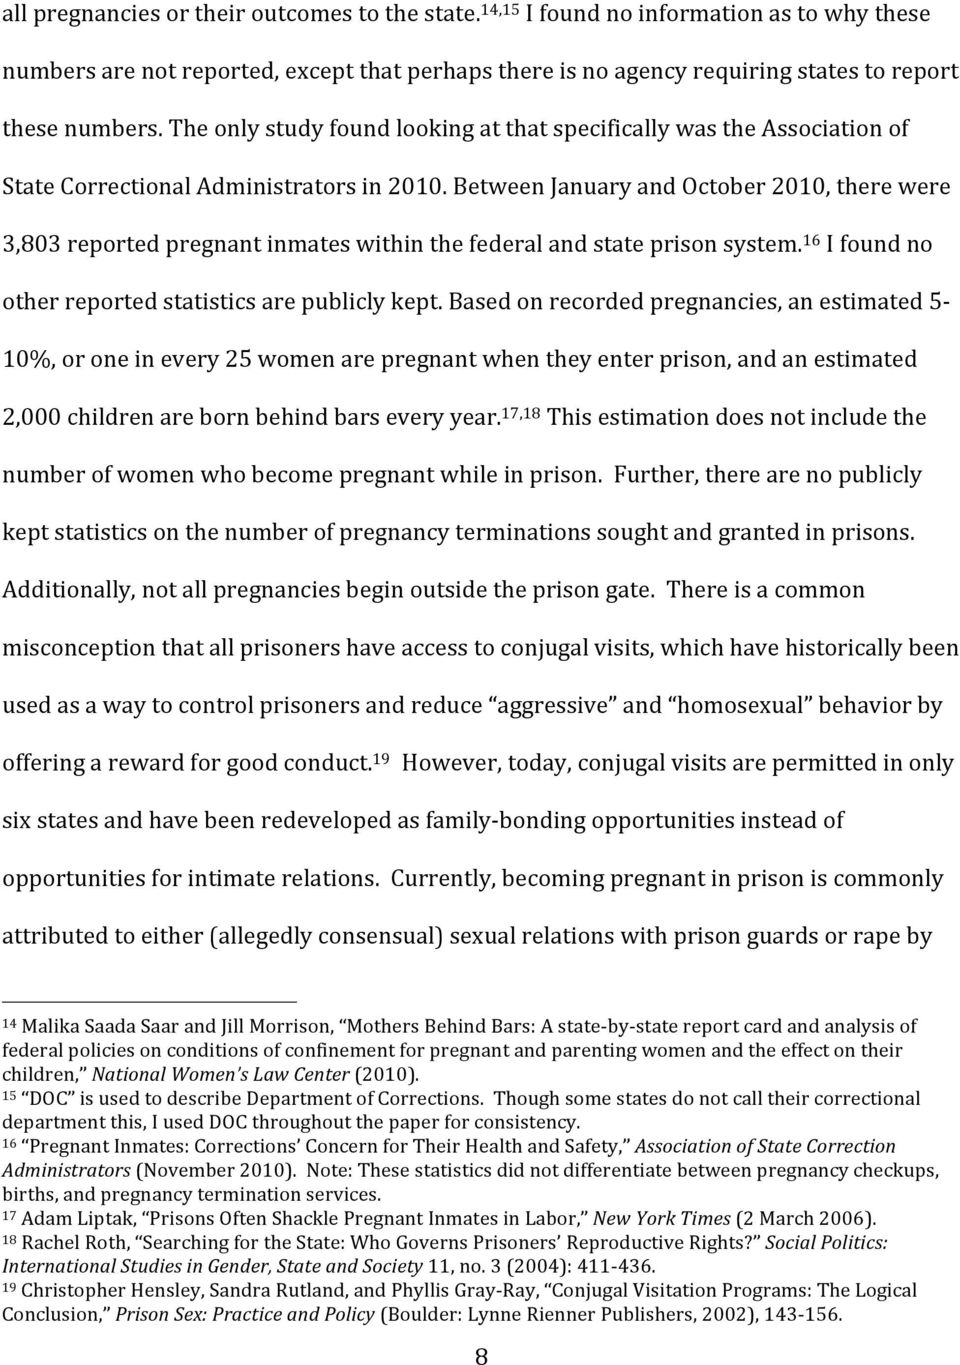 Between January and October 2010, there were 3,803 reported pregnant inmates within the federal and state prison system. 16 I found no other reported statistics are publicly kept.